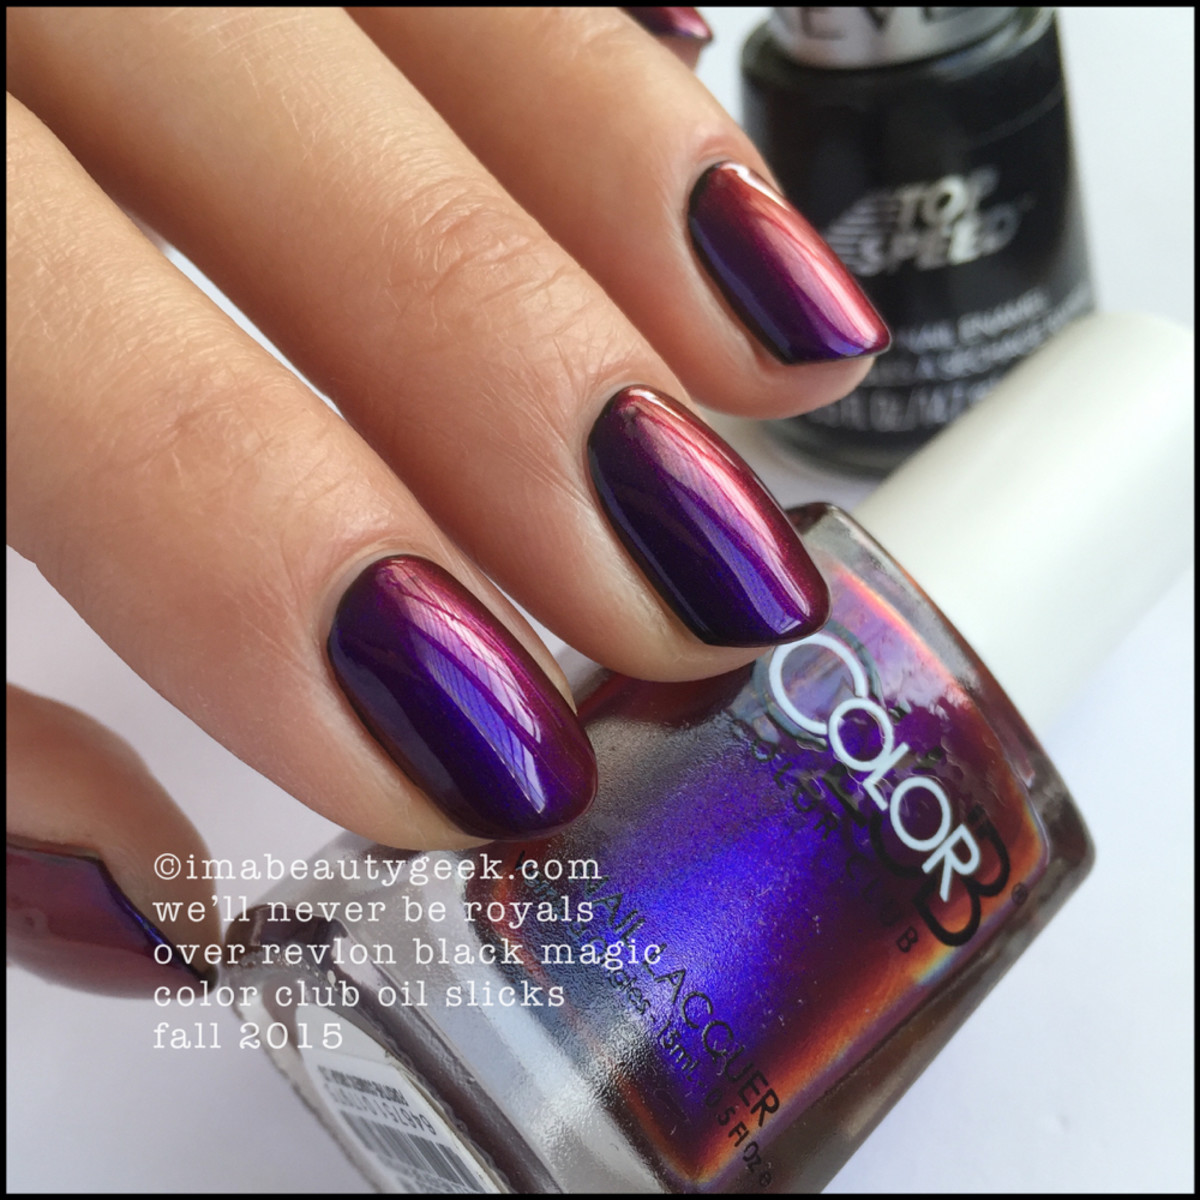 Color Club Oil Slicks Collection_Color Club Well Never Be Royals over Black_6